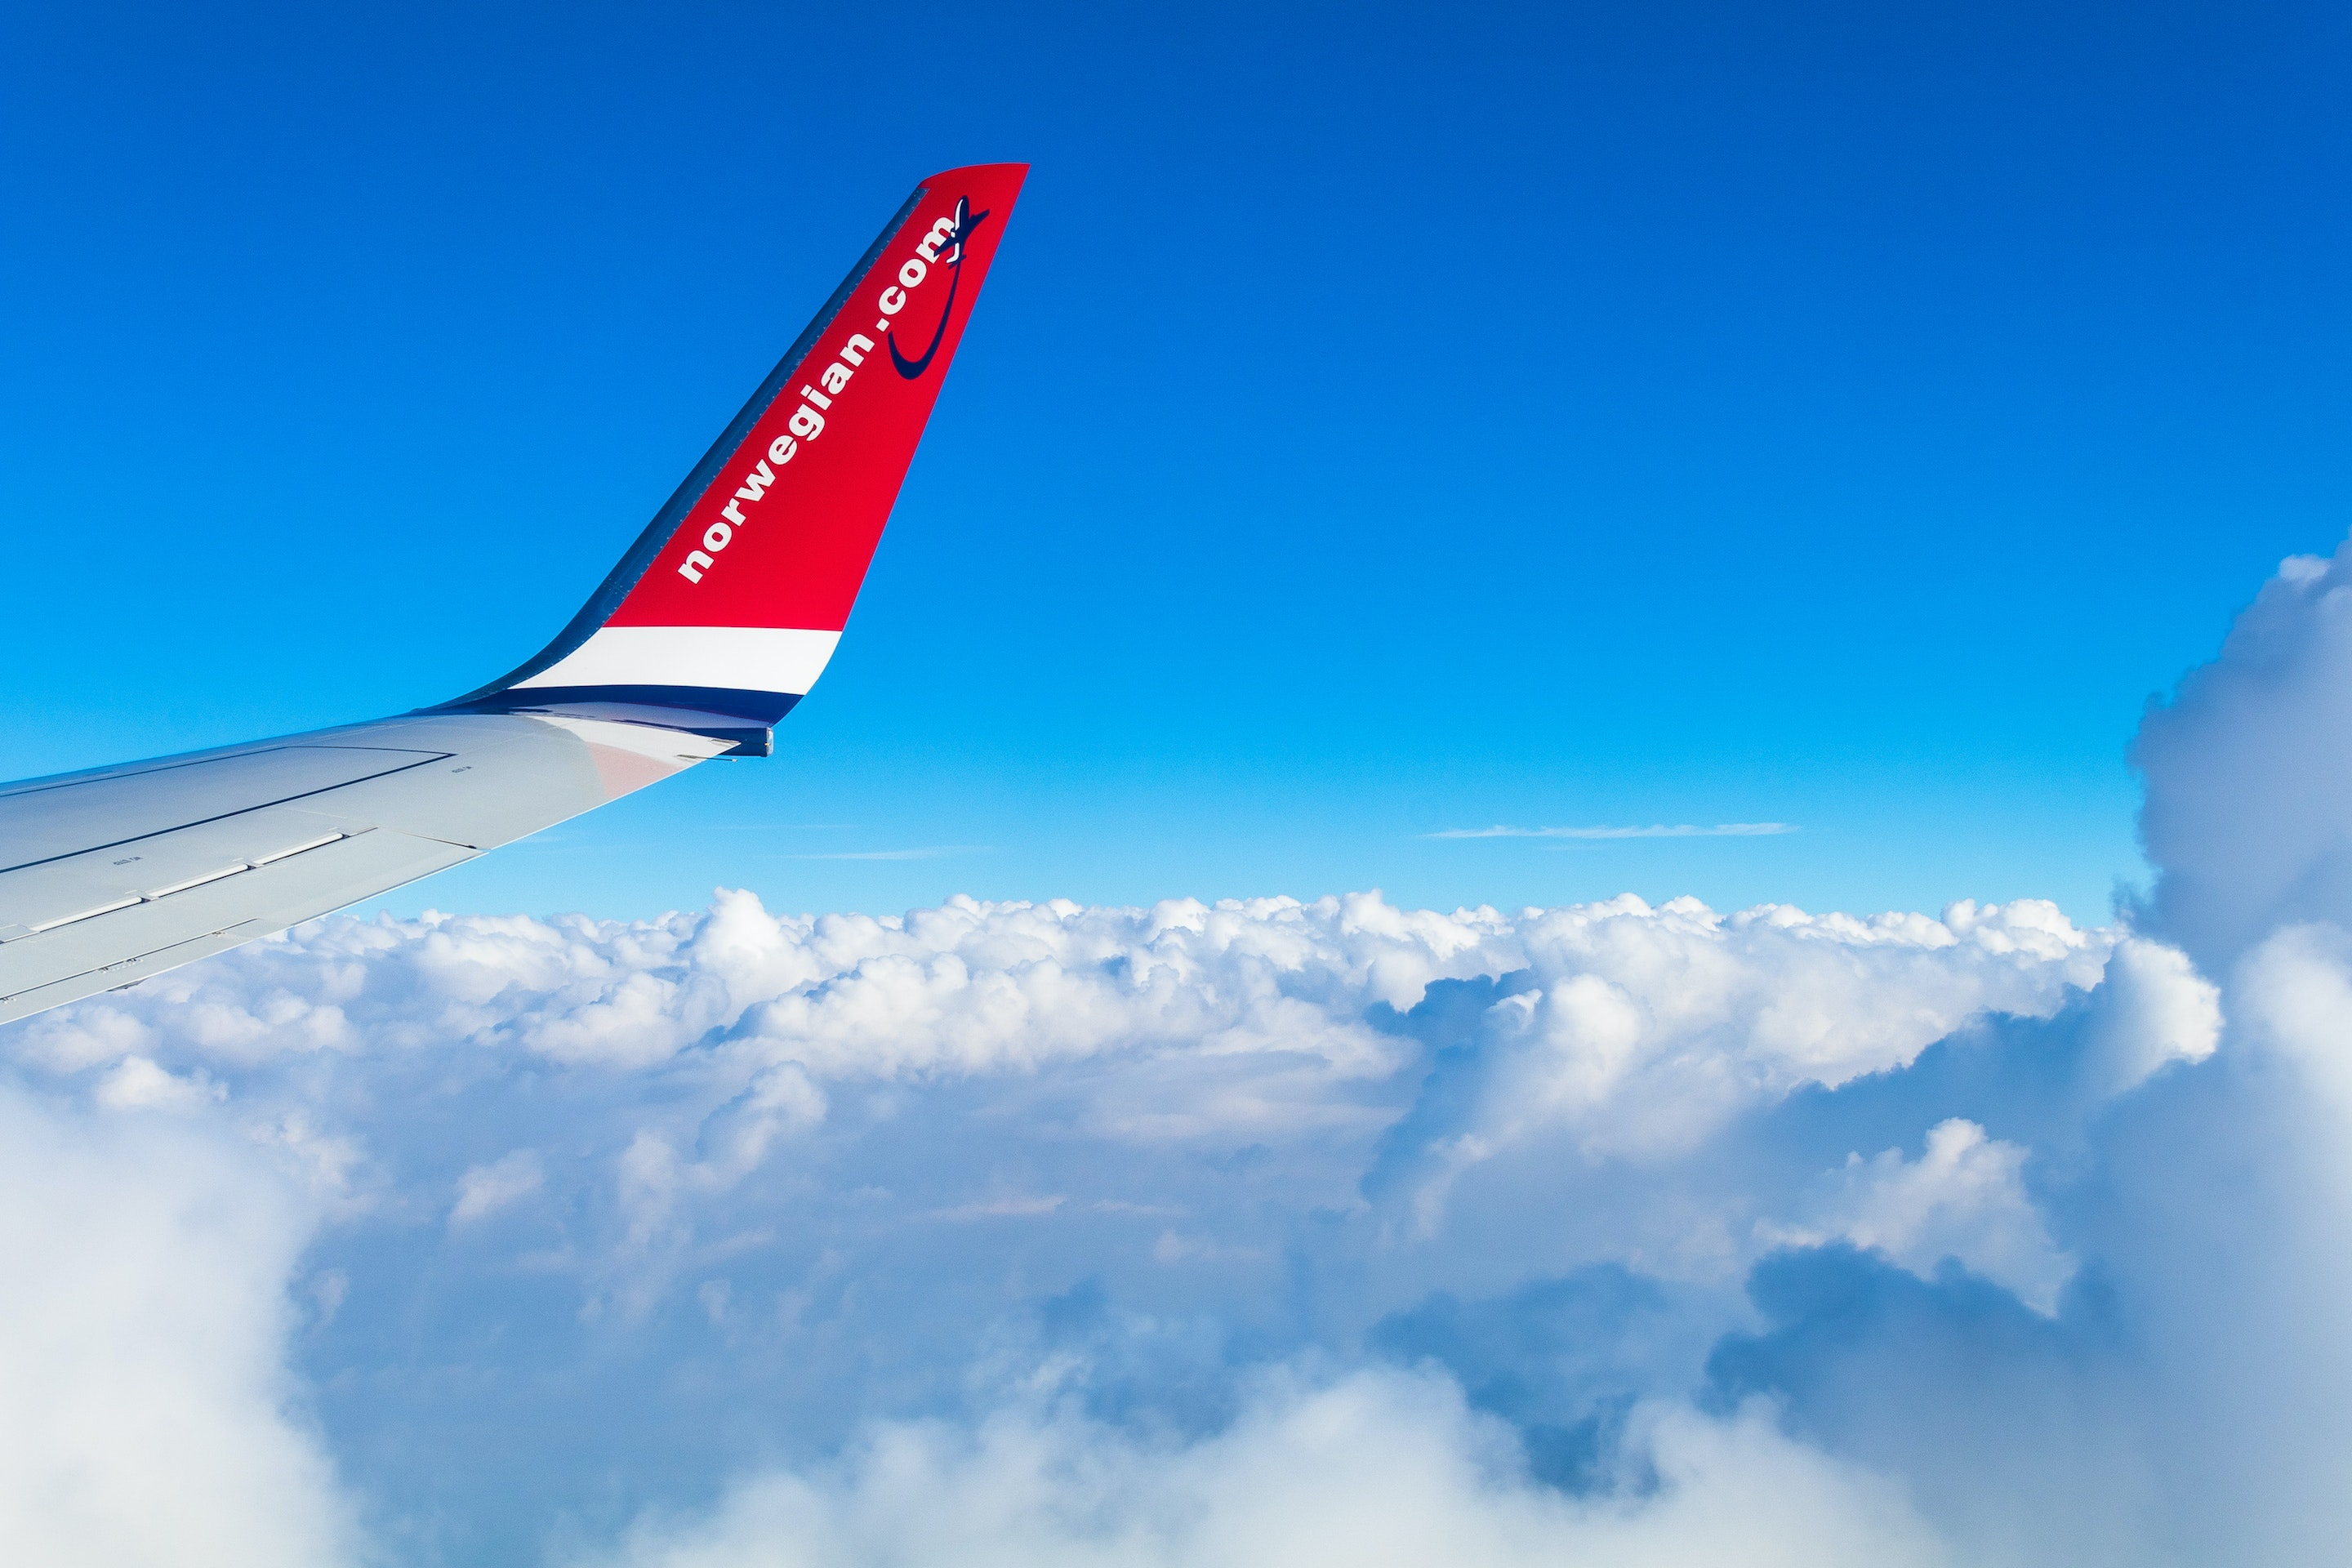 Norwegian has become known for its low fares from the United States to Europe.